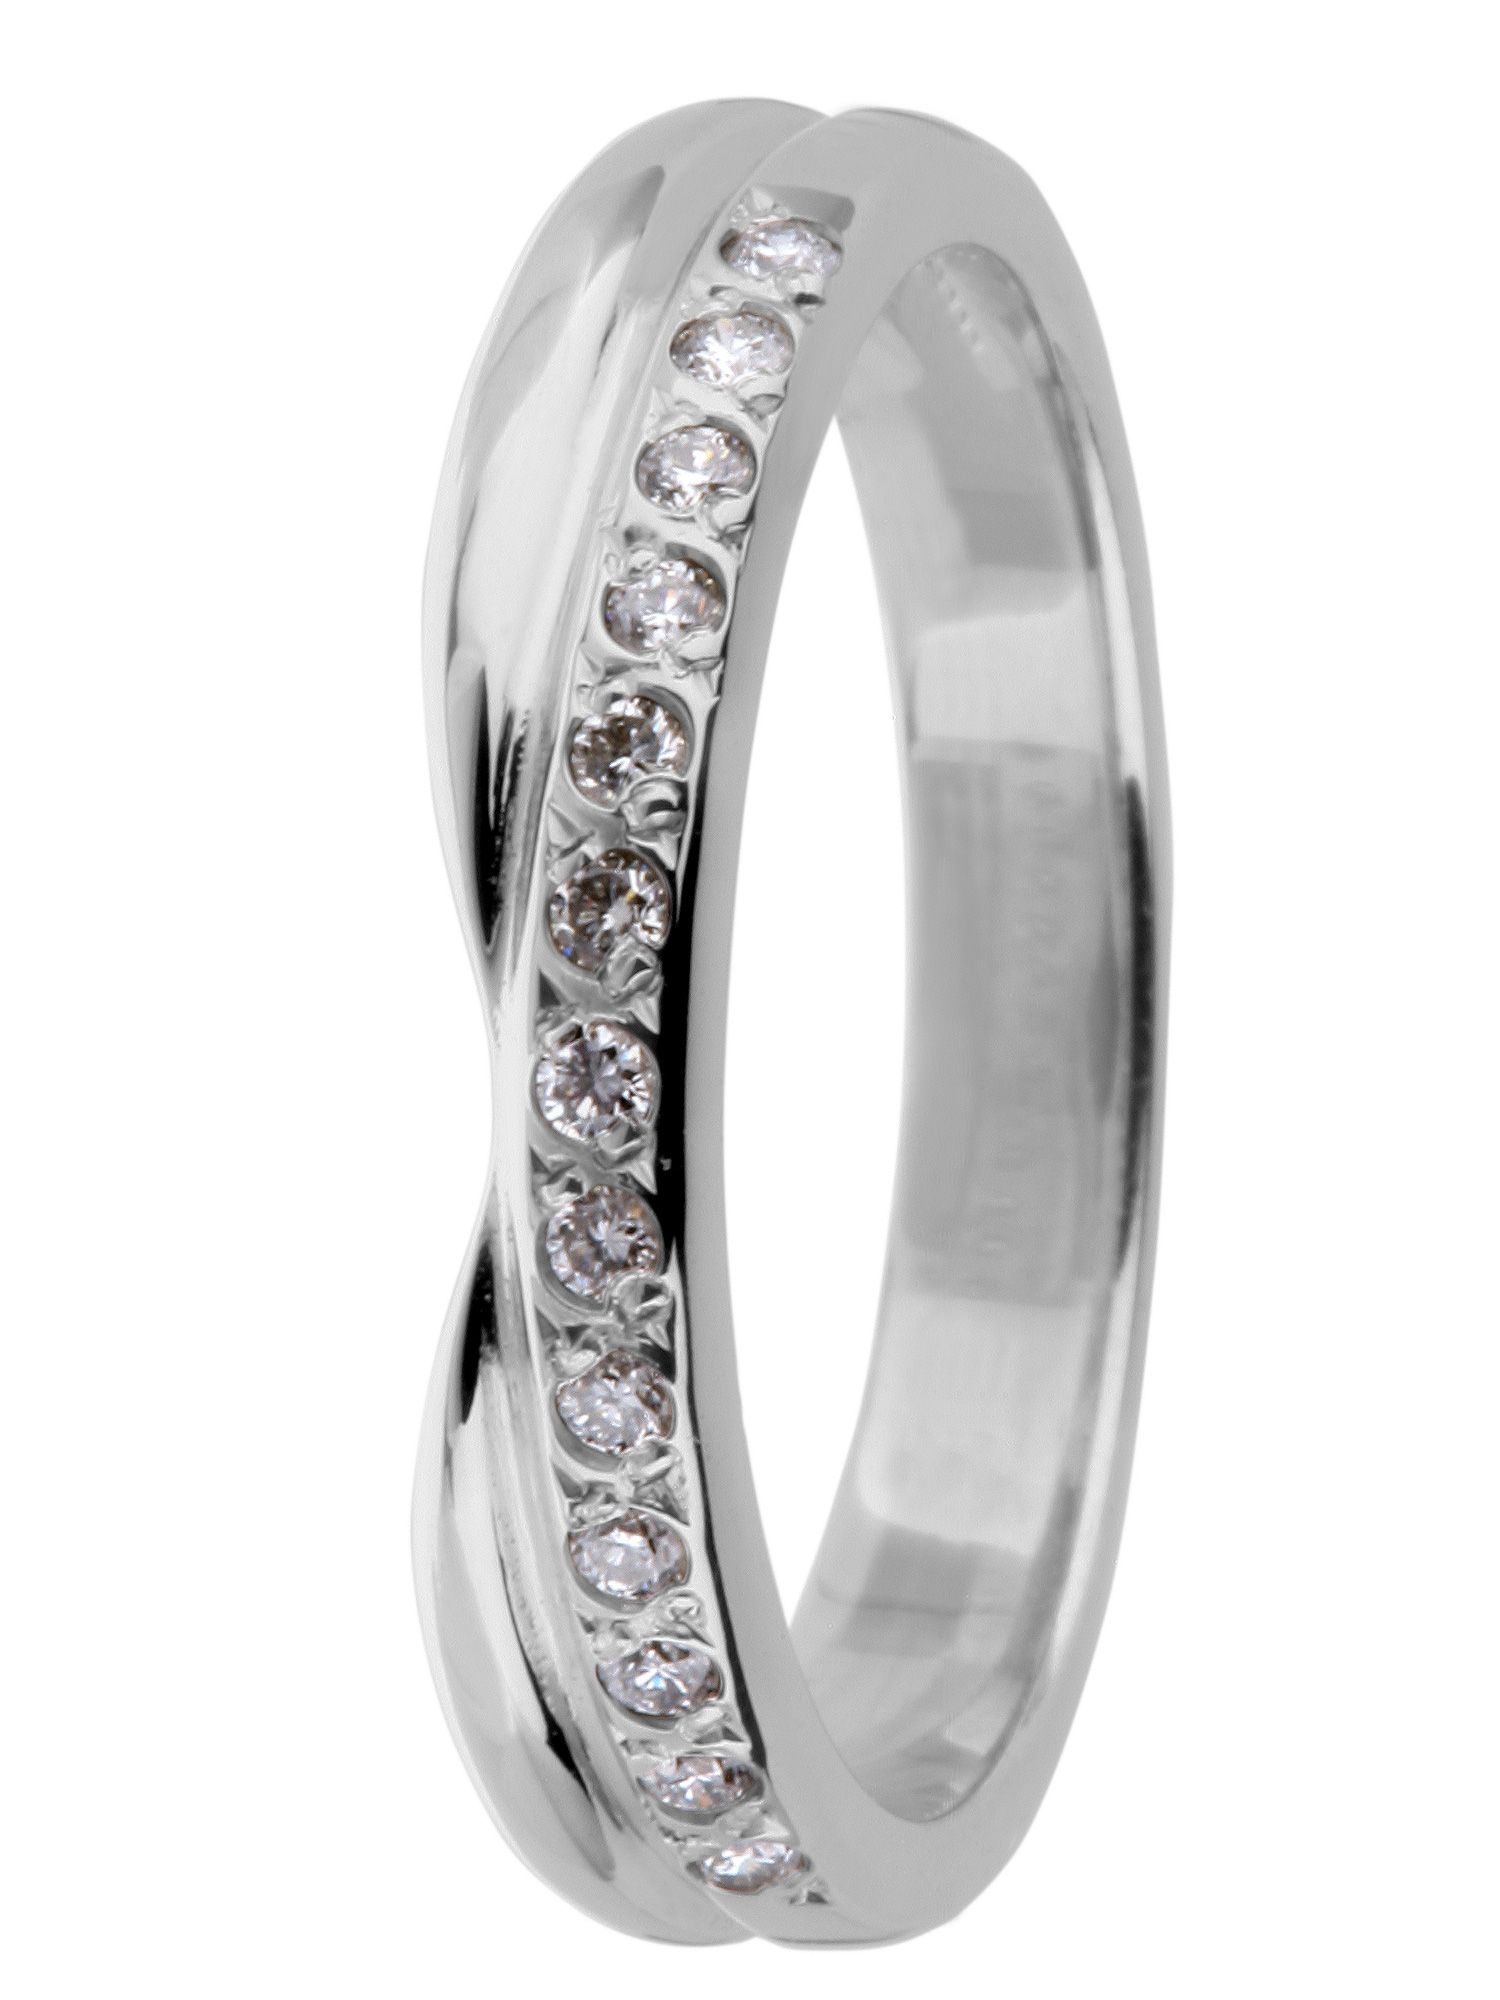 Brides 18ct gold 0.15ct diamond wedding ring